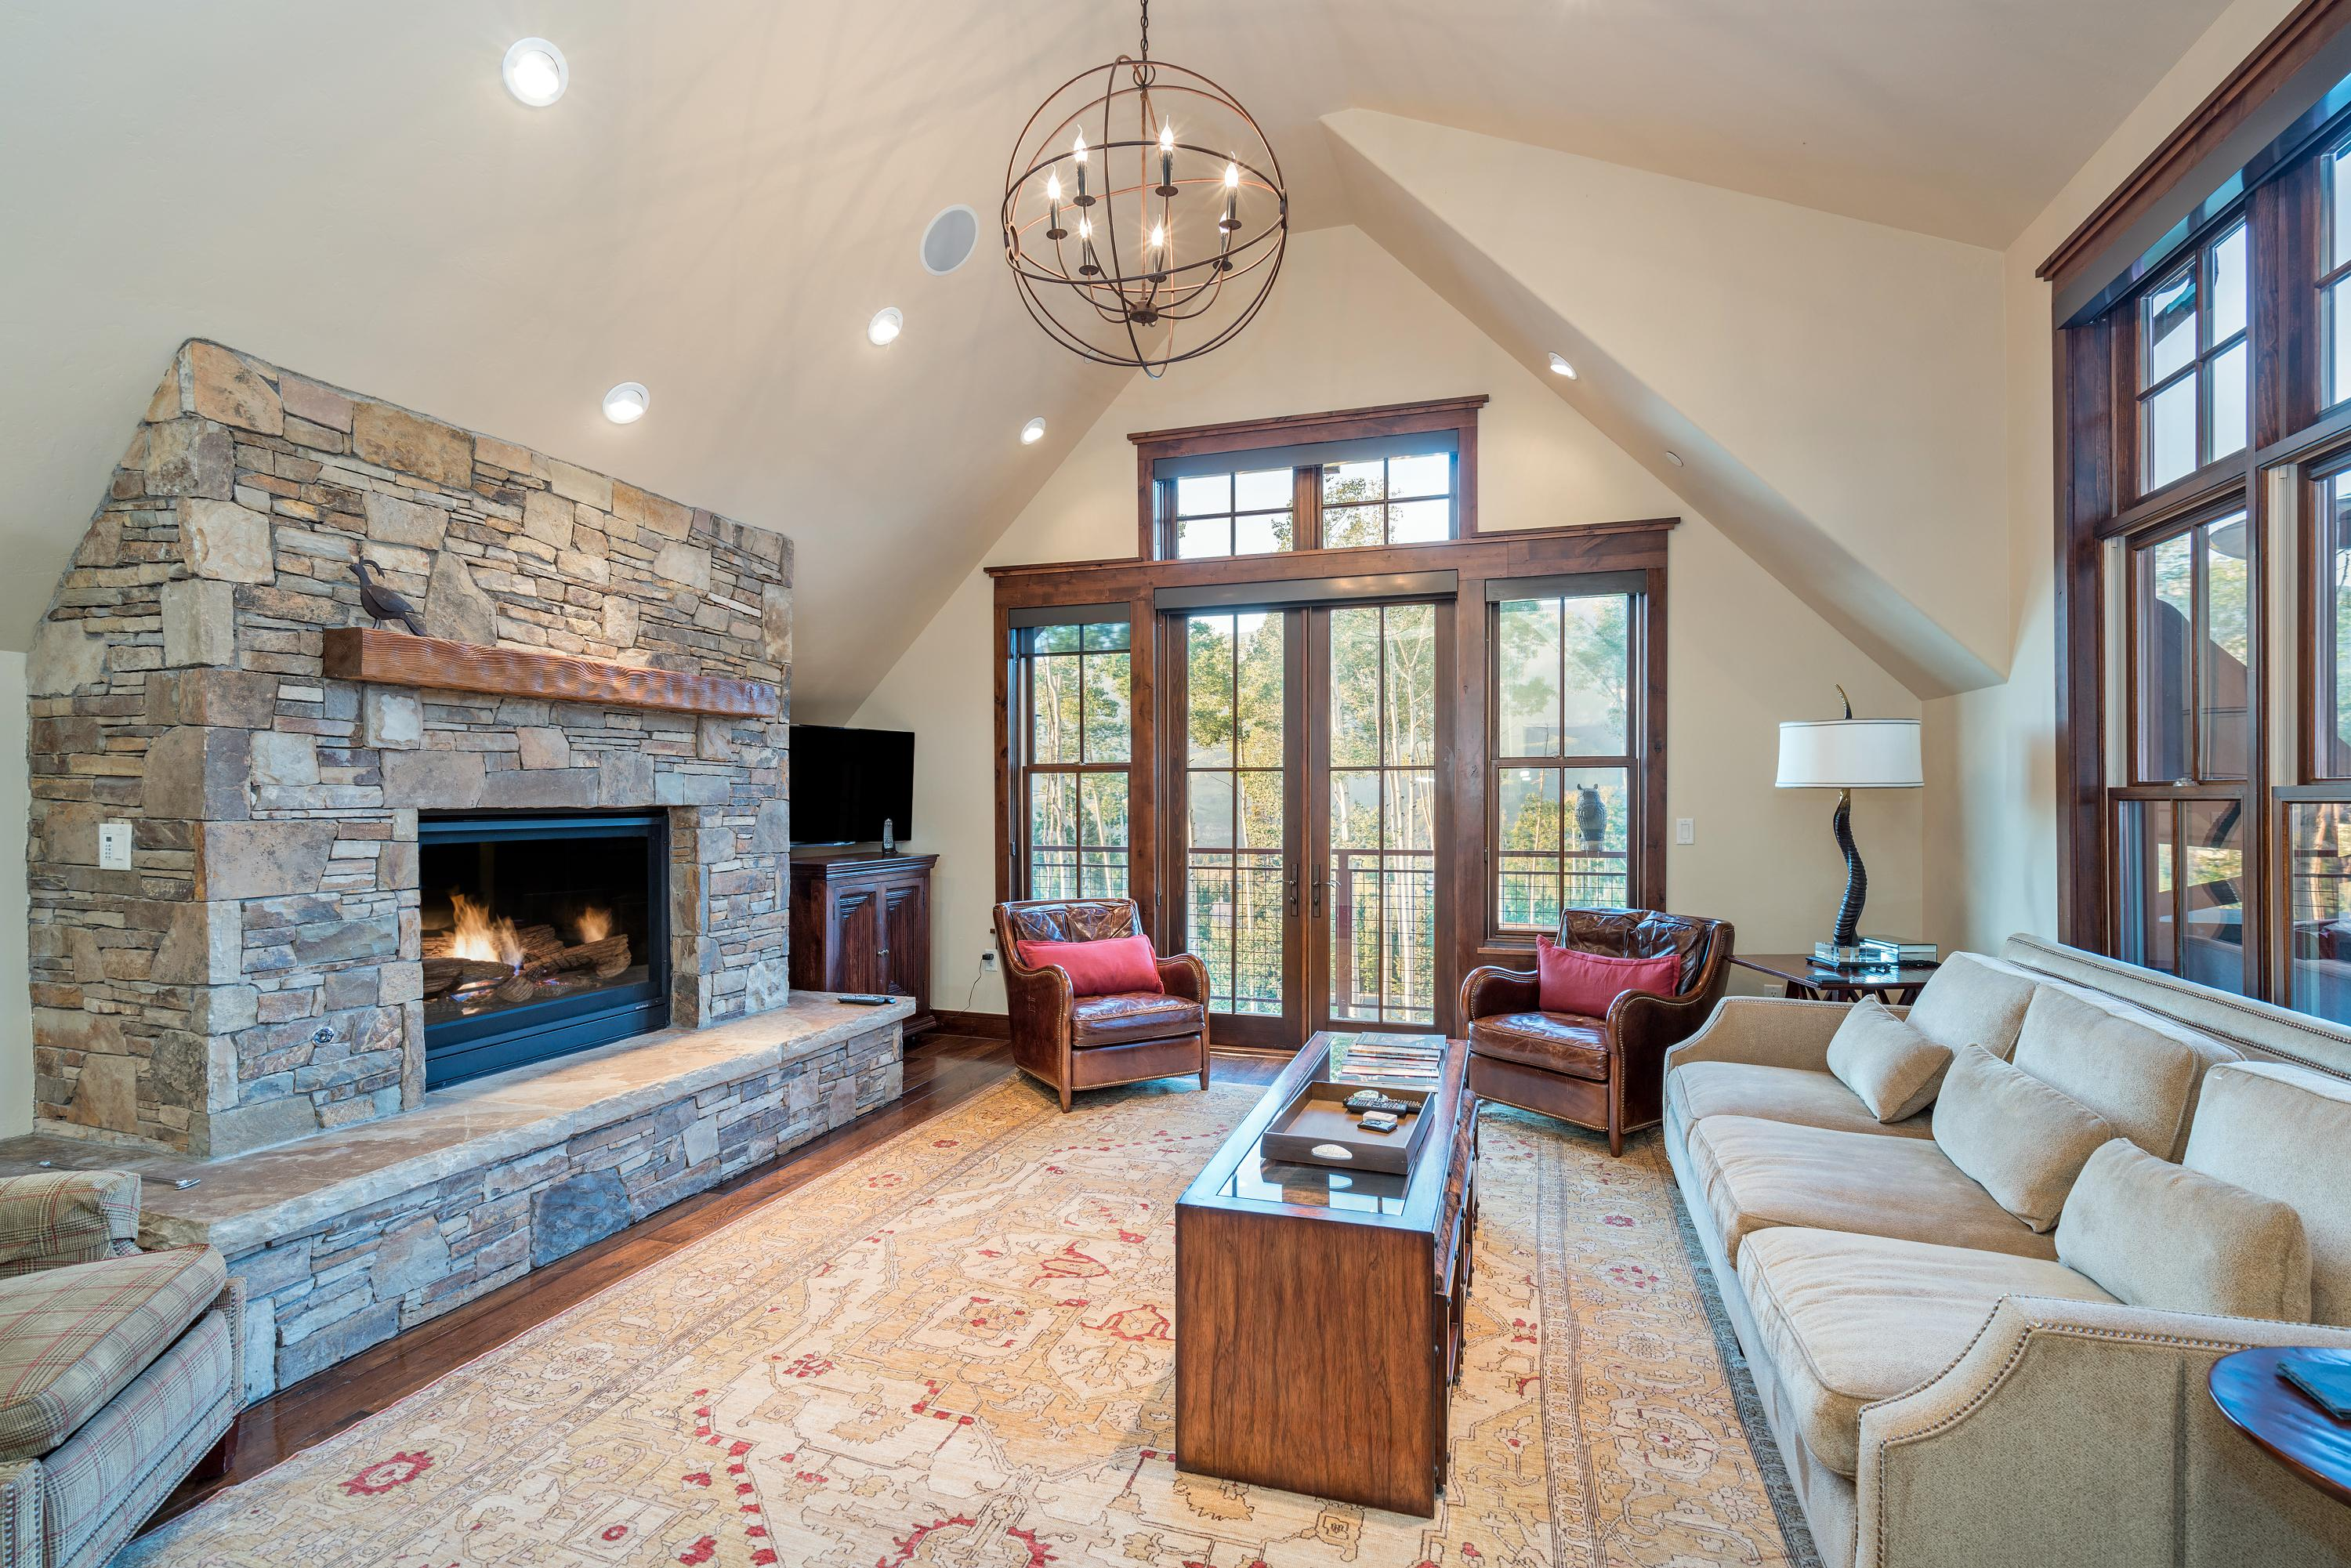 Impeccably Decorated Ski-in Ski-out Condo with Hot Tub